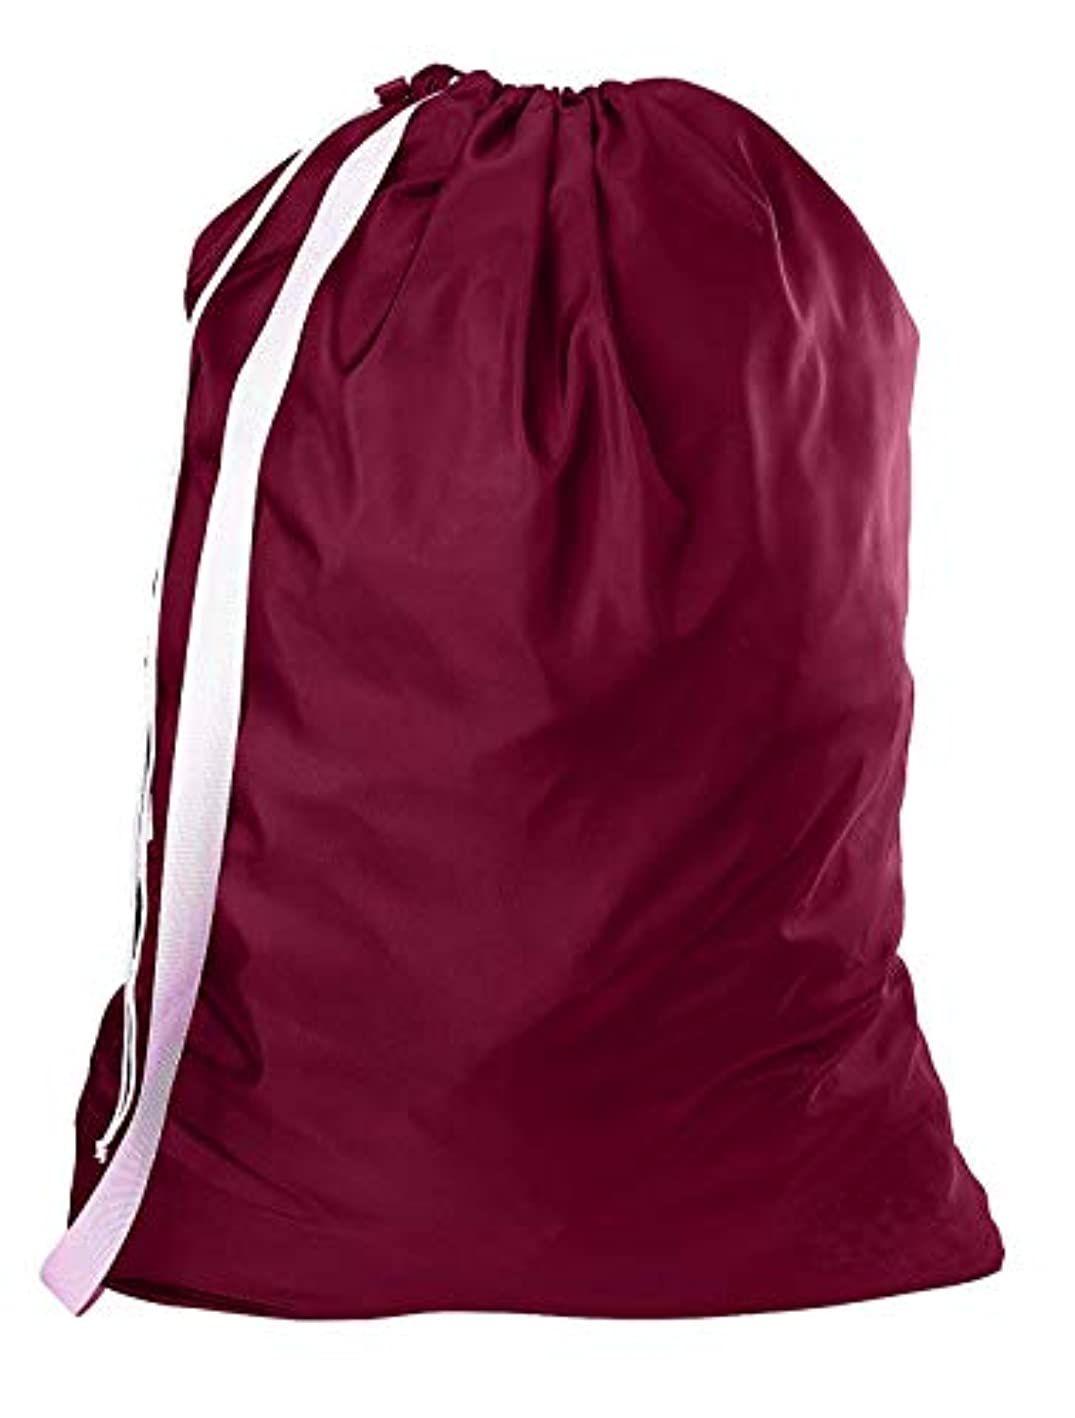 Nylon Laundry Bag with Reliable Shoulder Strap - 30